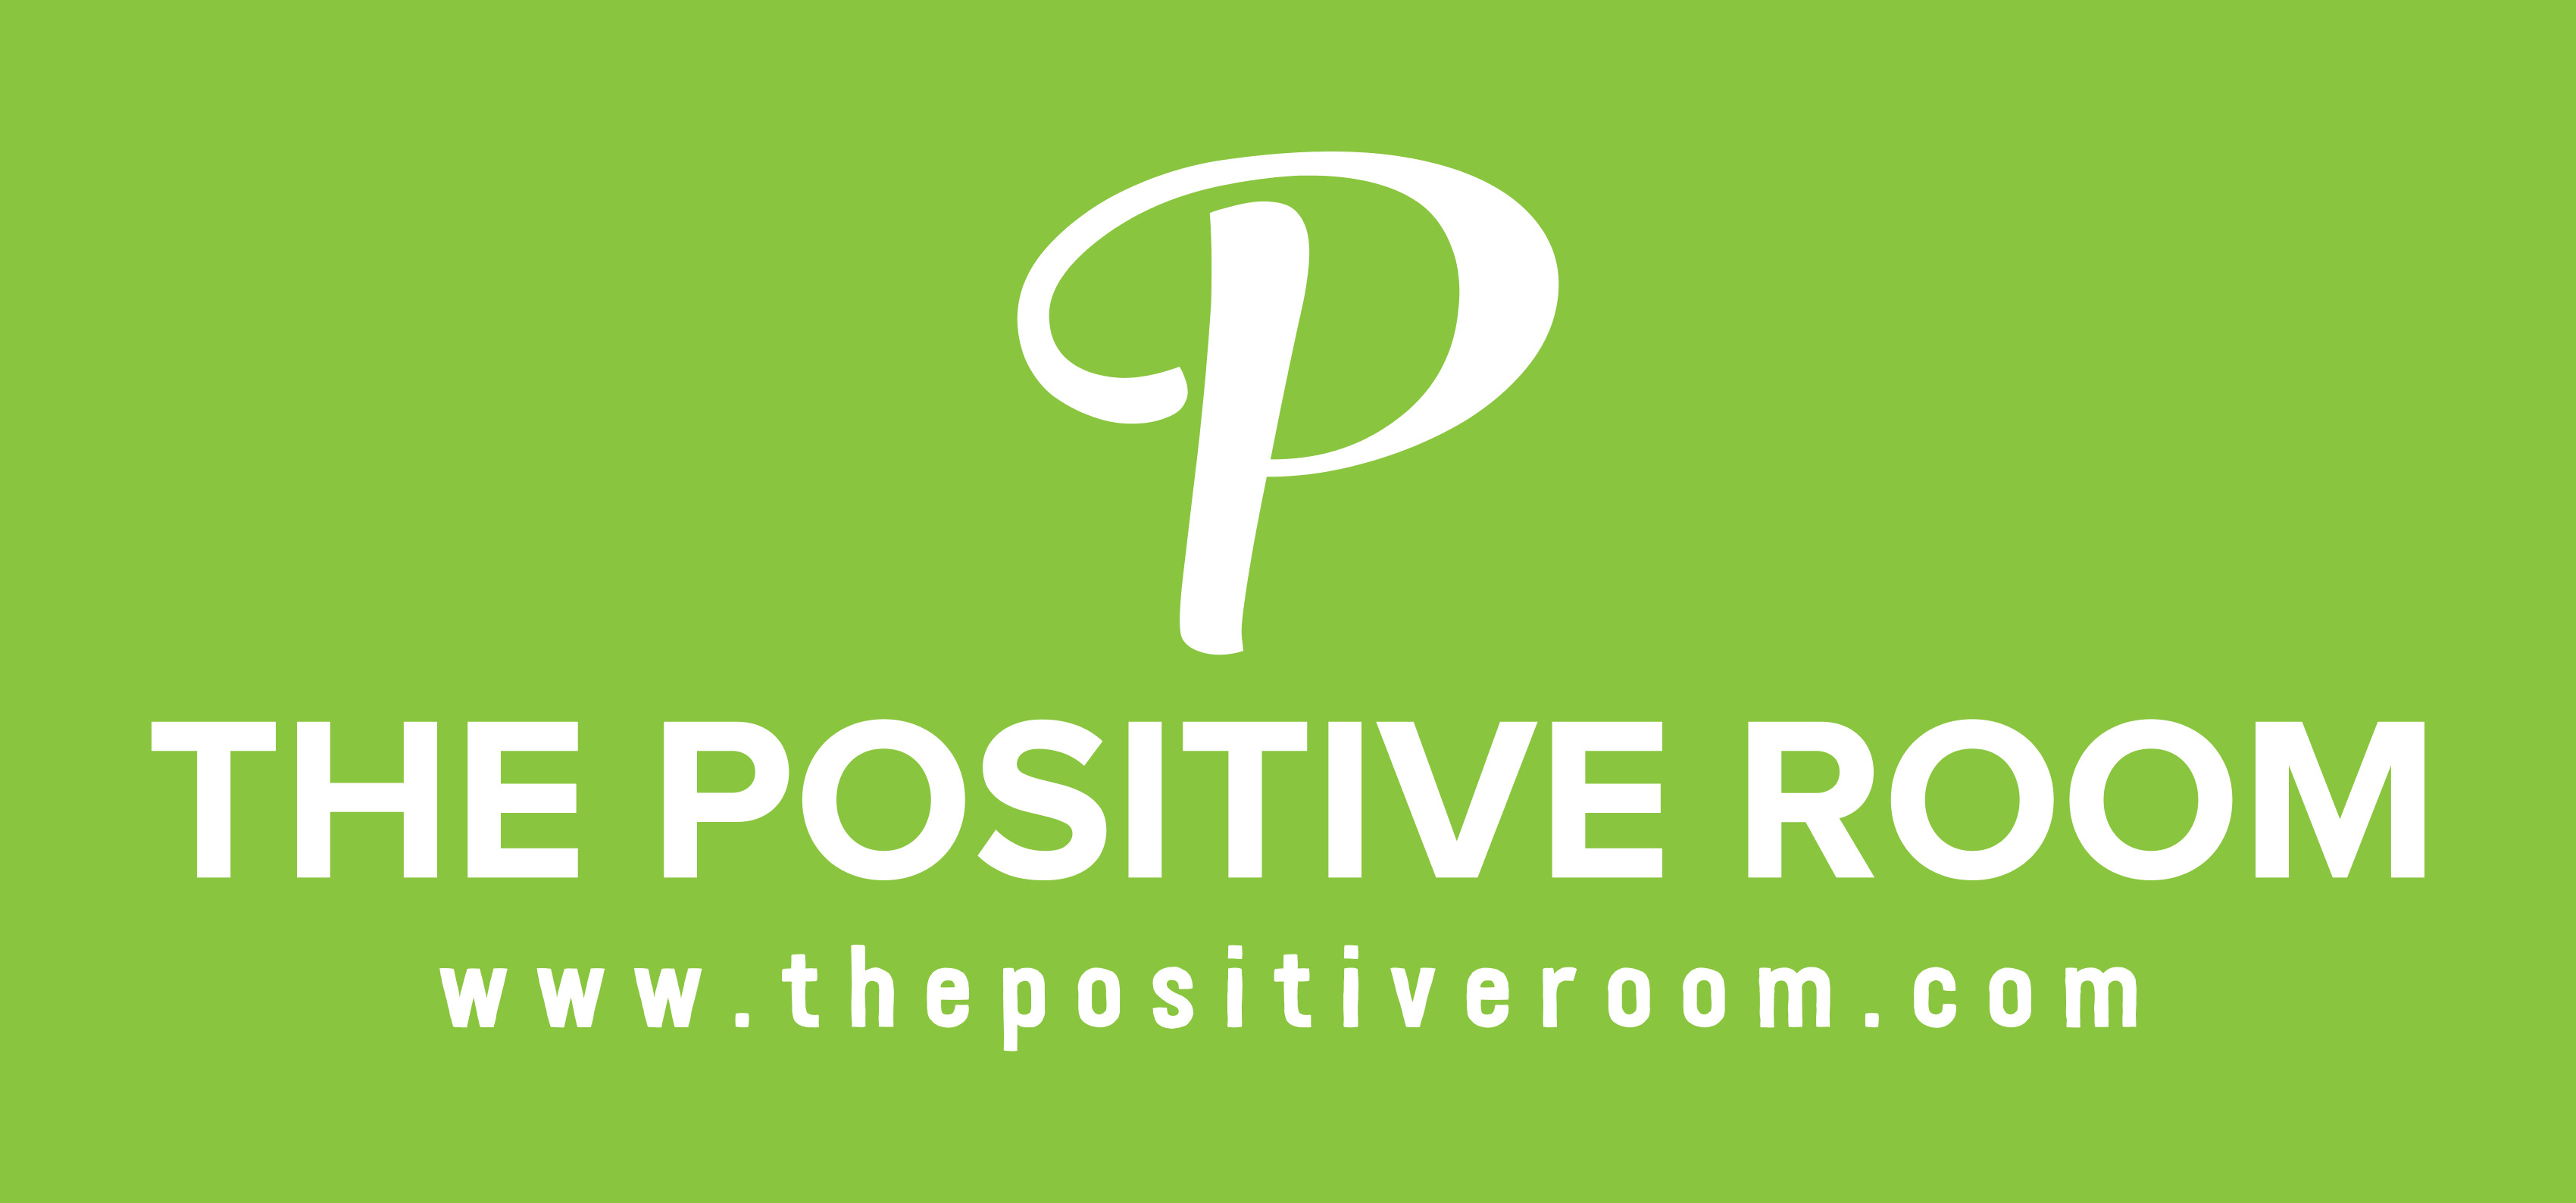 The Positive Room